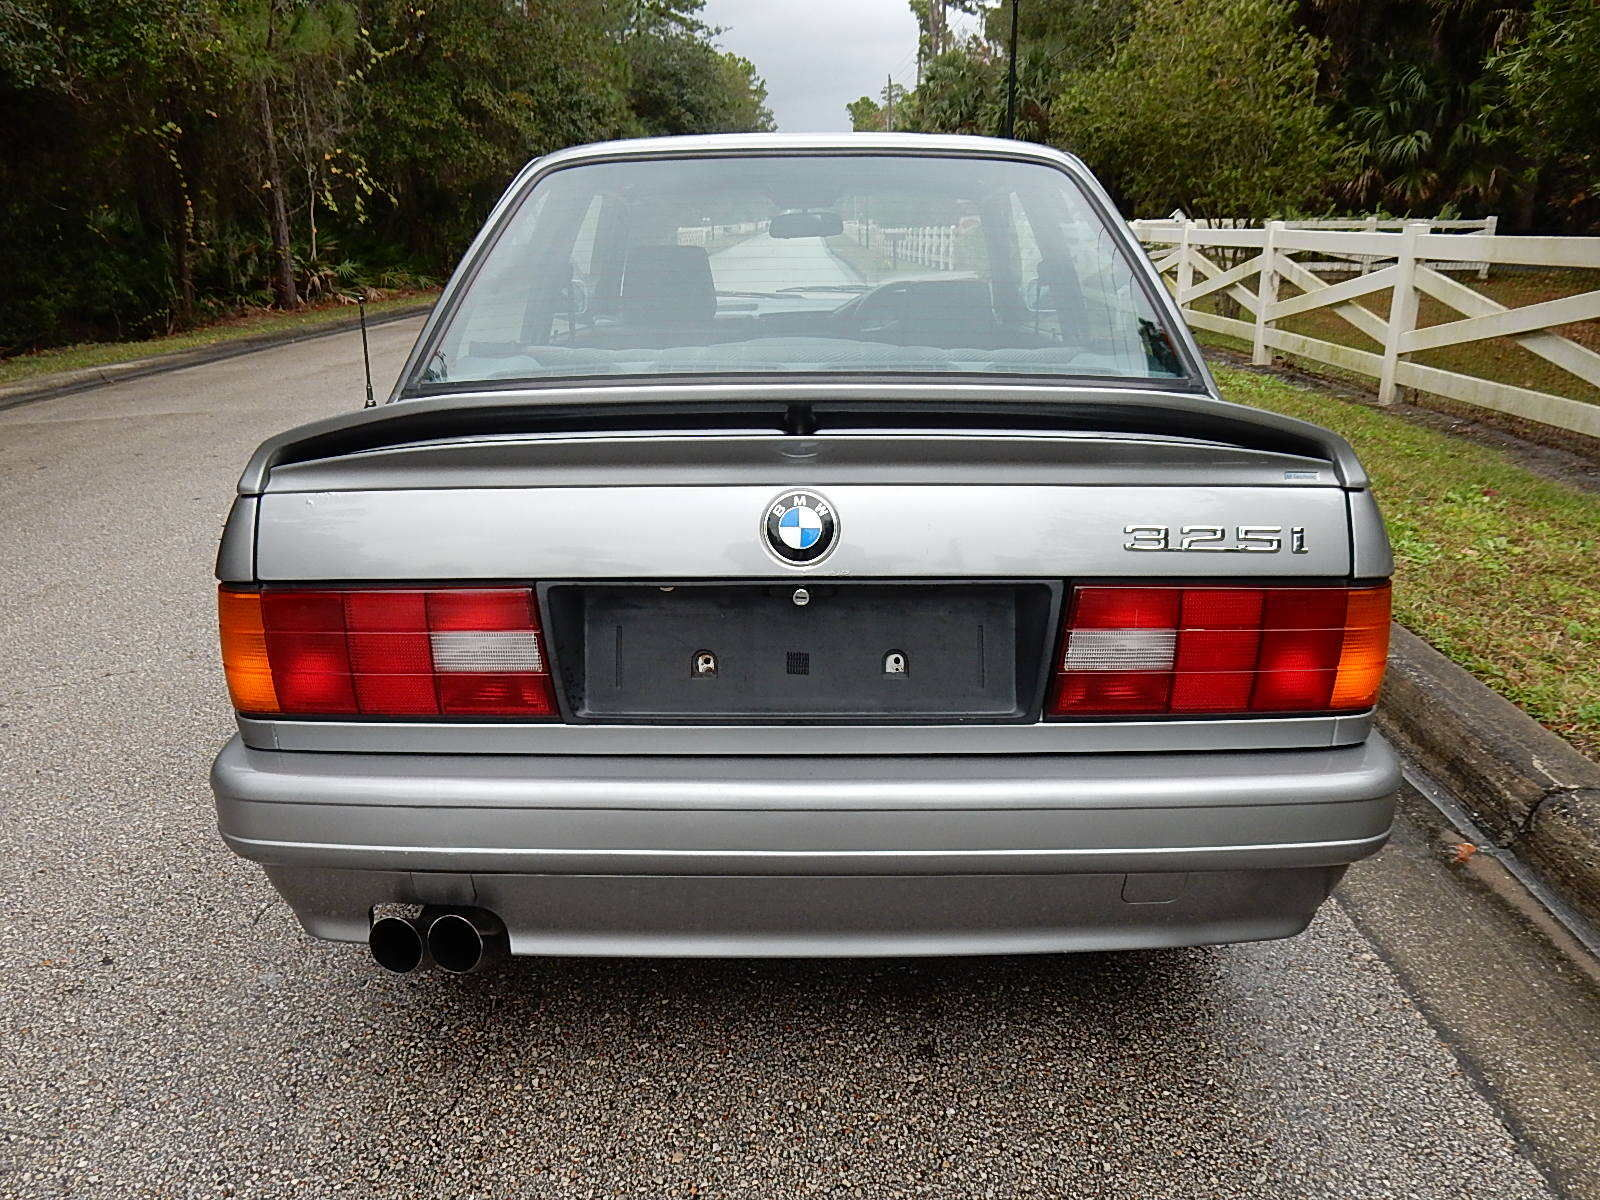 1988 Bmw 325i Sport Rhd Original Eurospec Mtech 2 E30 For Sale In Sanford Florida United States For Sale Photos Technical Specifications Description